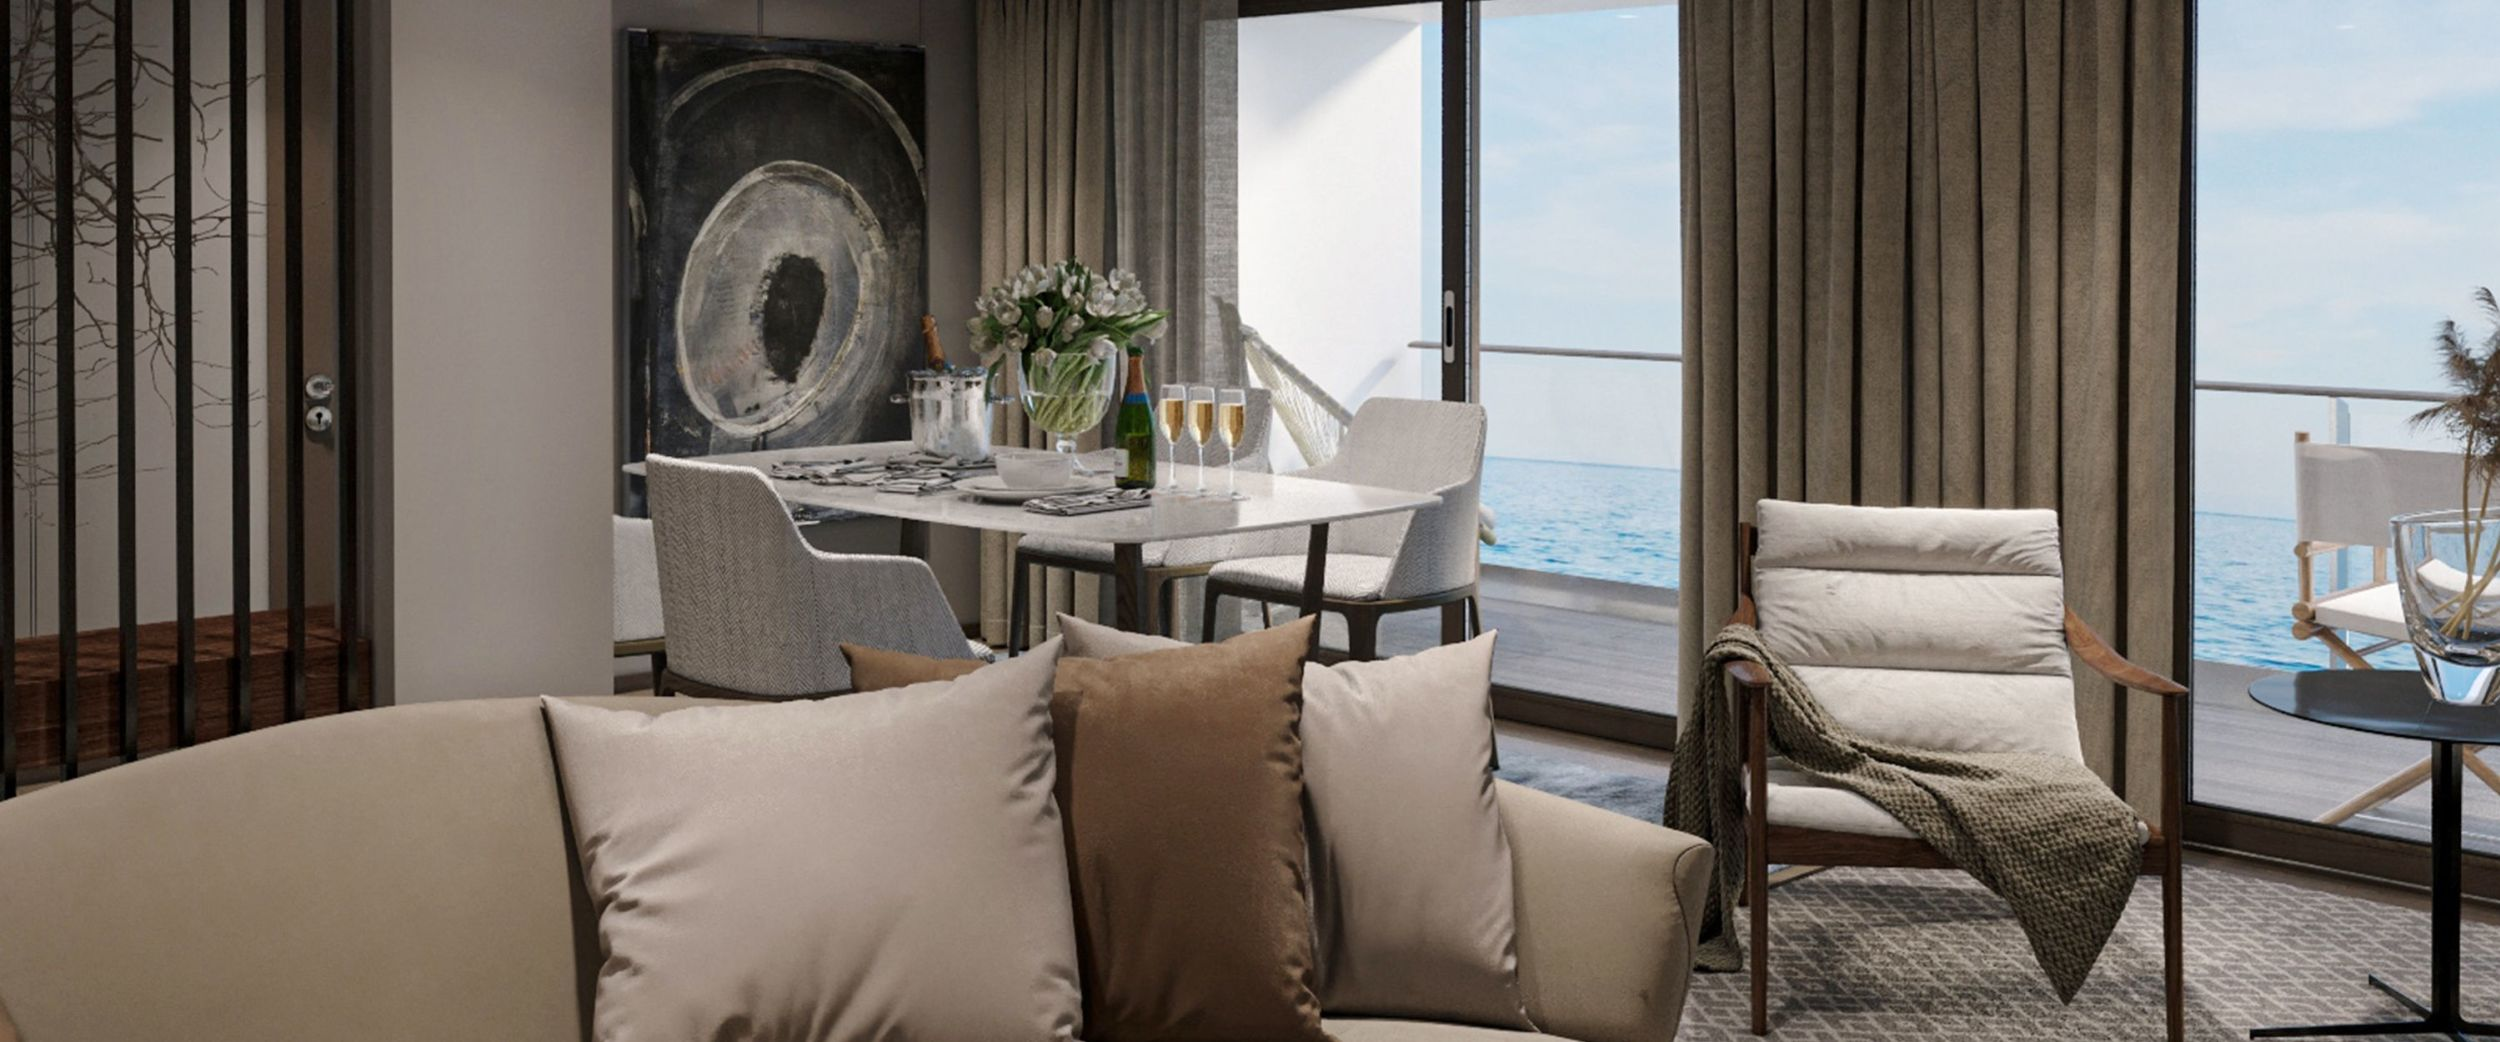 Presidential suite lounge area. Copyright Havila Voyages